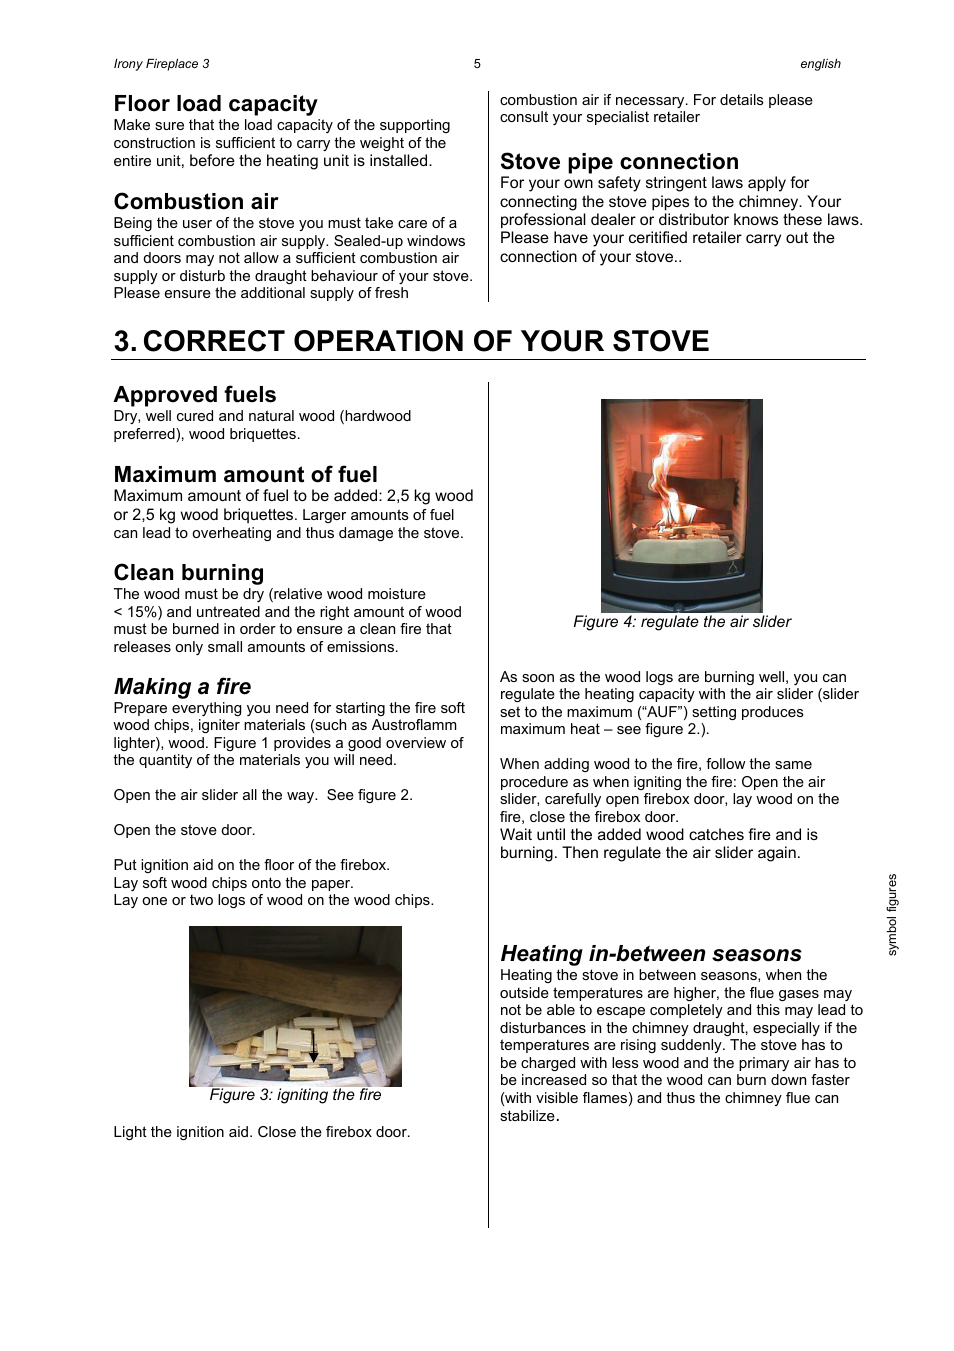 correct operation of your stove floor load capacity combustion air rh manualsdir com